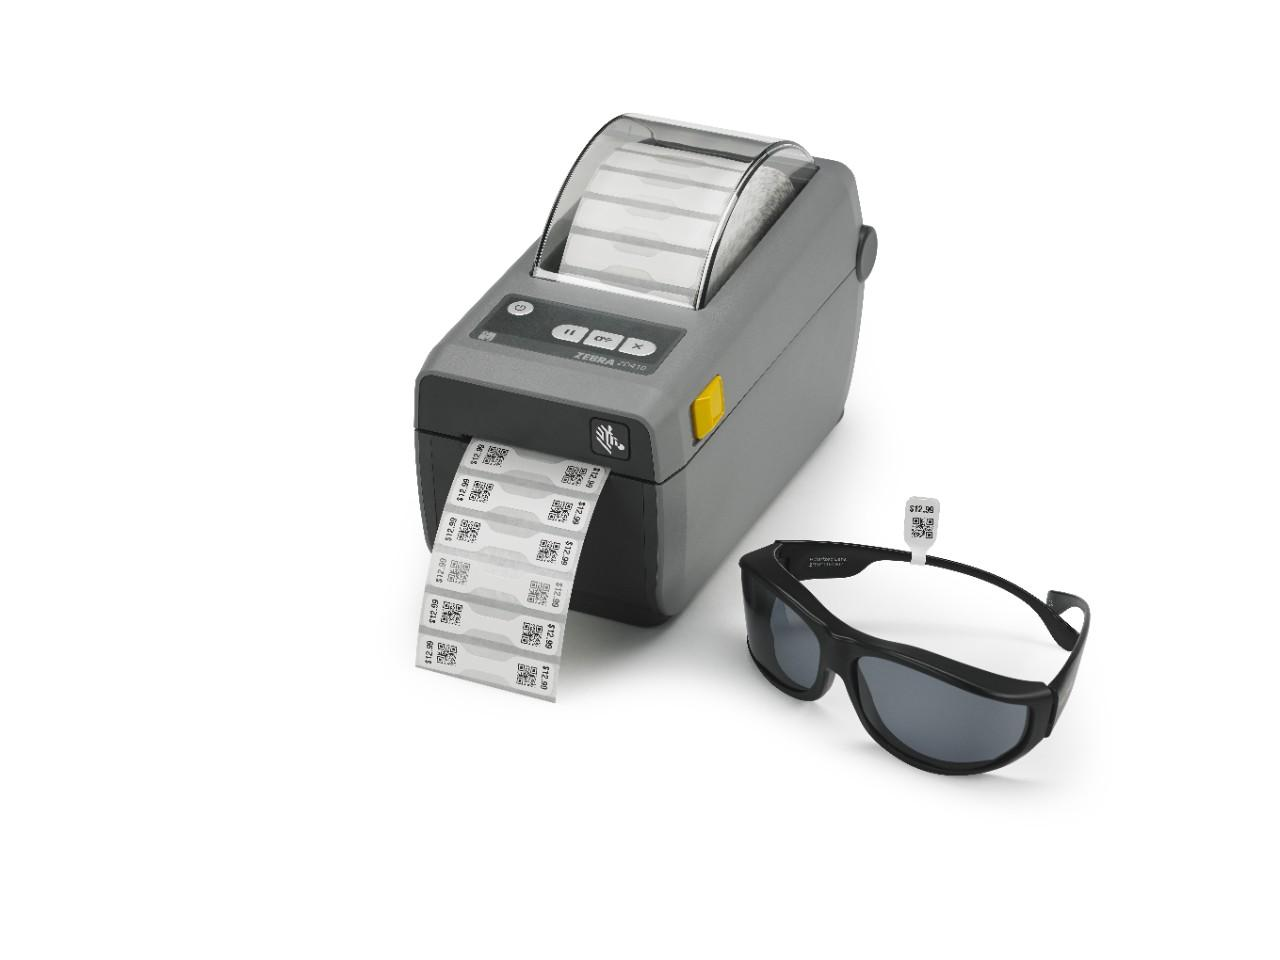 Zebra ZD410 direct thermal printer Archives - Barcode Southwest